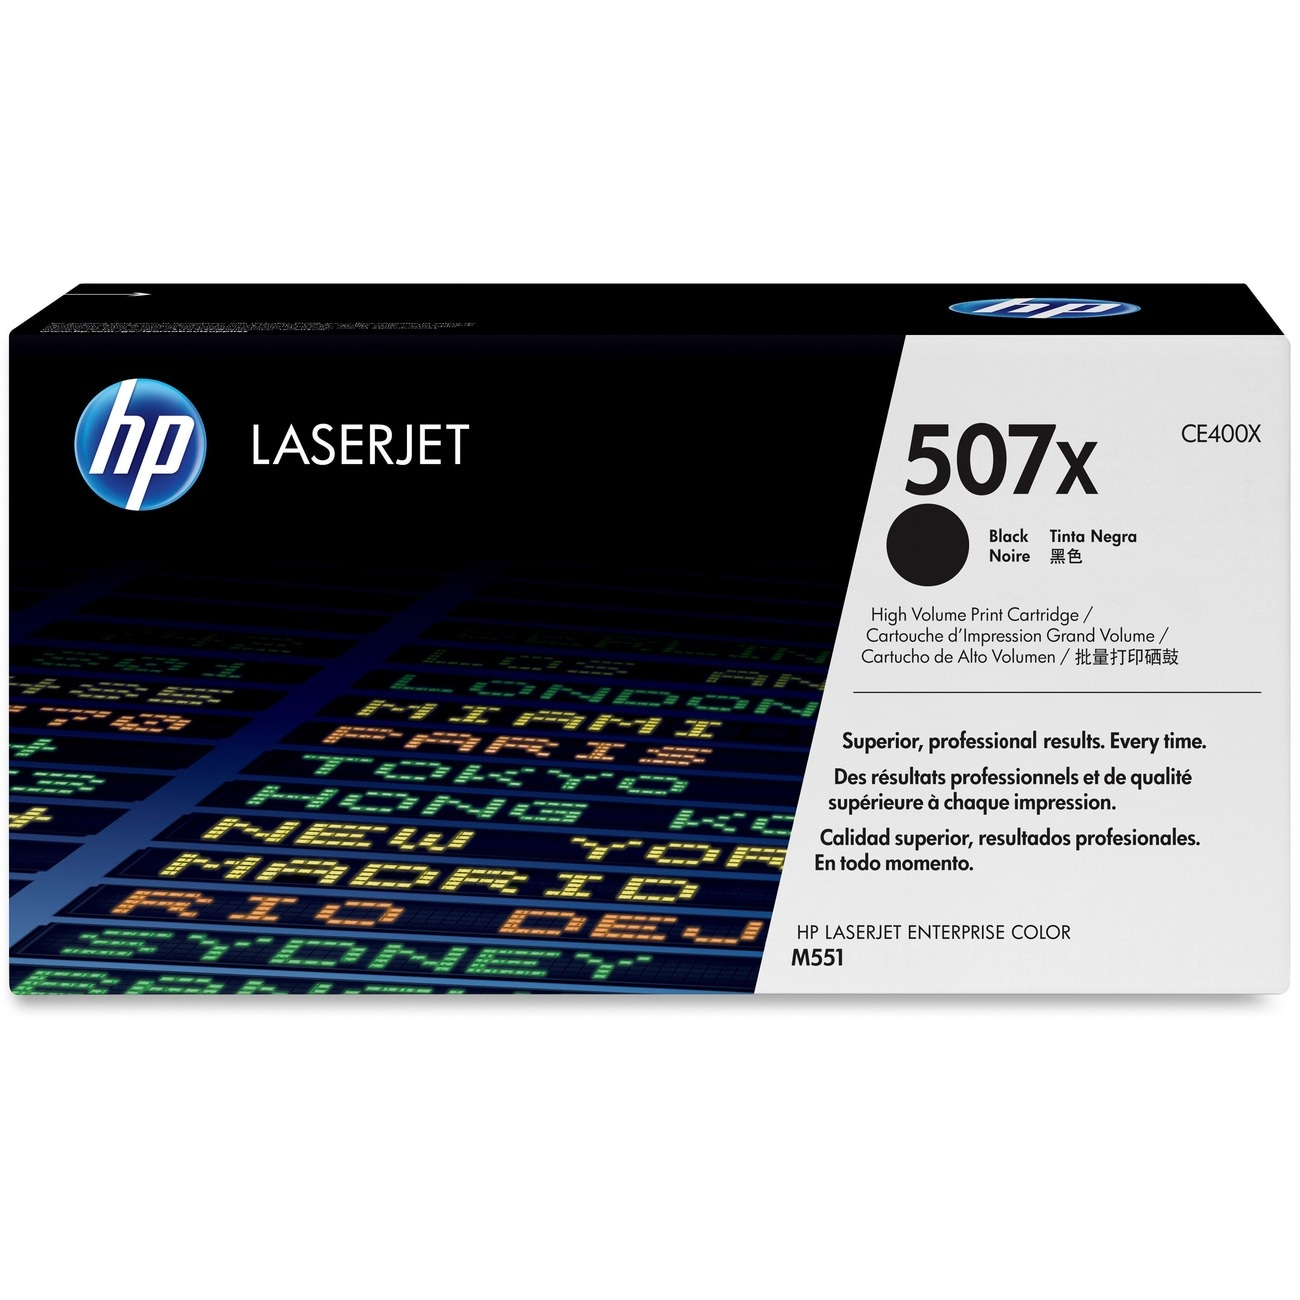 HP 507X Toner Cartridge - Black - Thumbnail 0